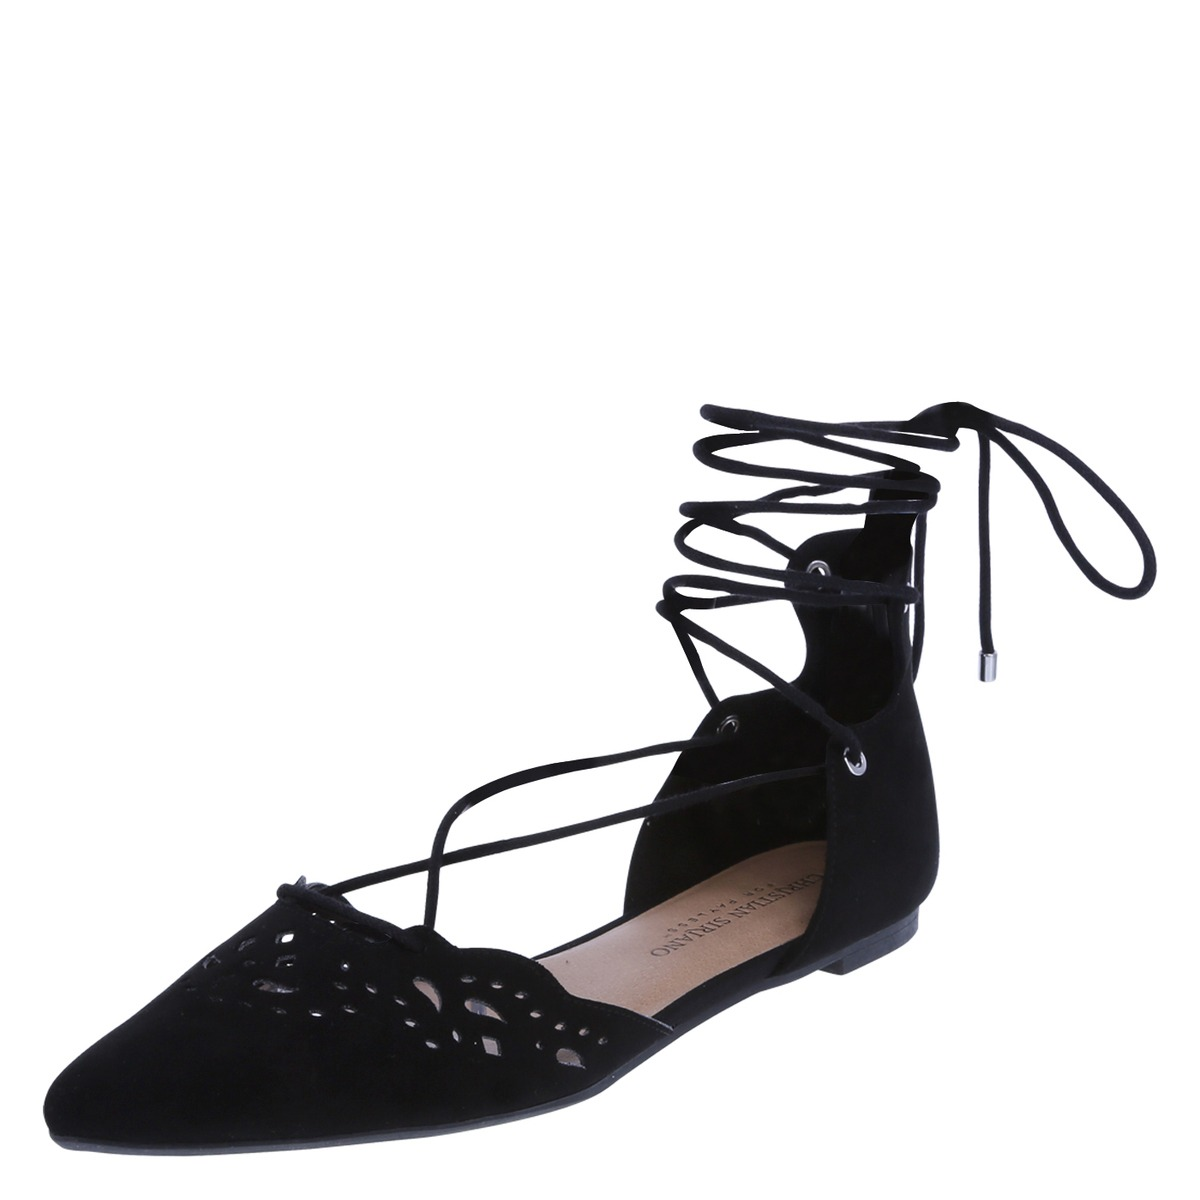 03aec8c76598 Zapatos Mujer Christian Siriano Brunch Chopout Ghillie -   117.626 ...